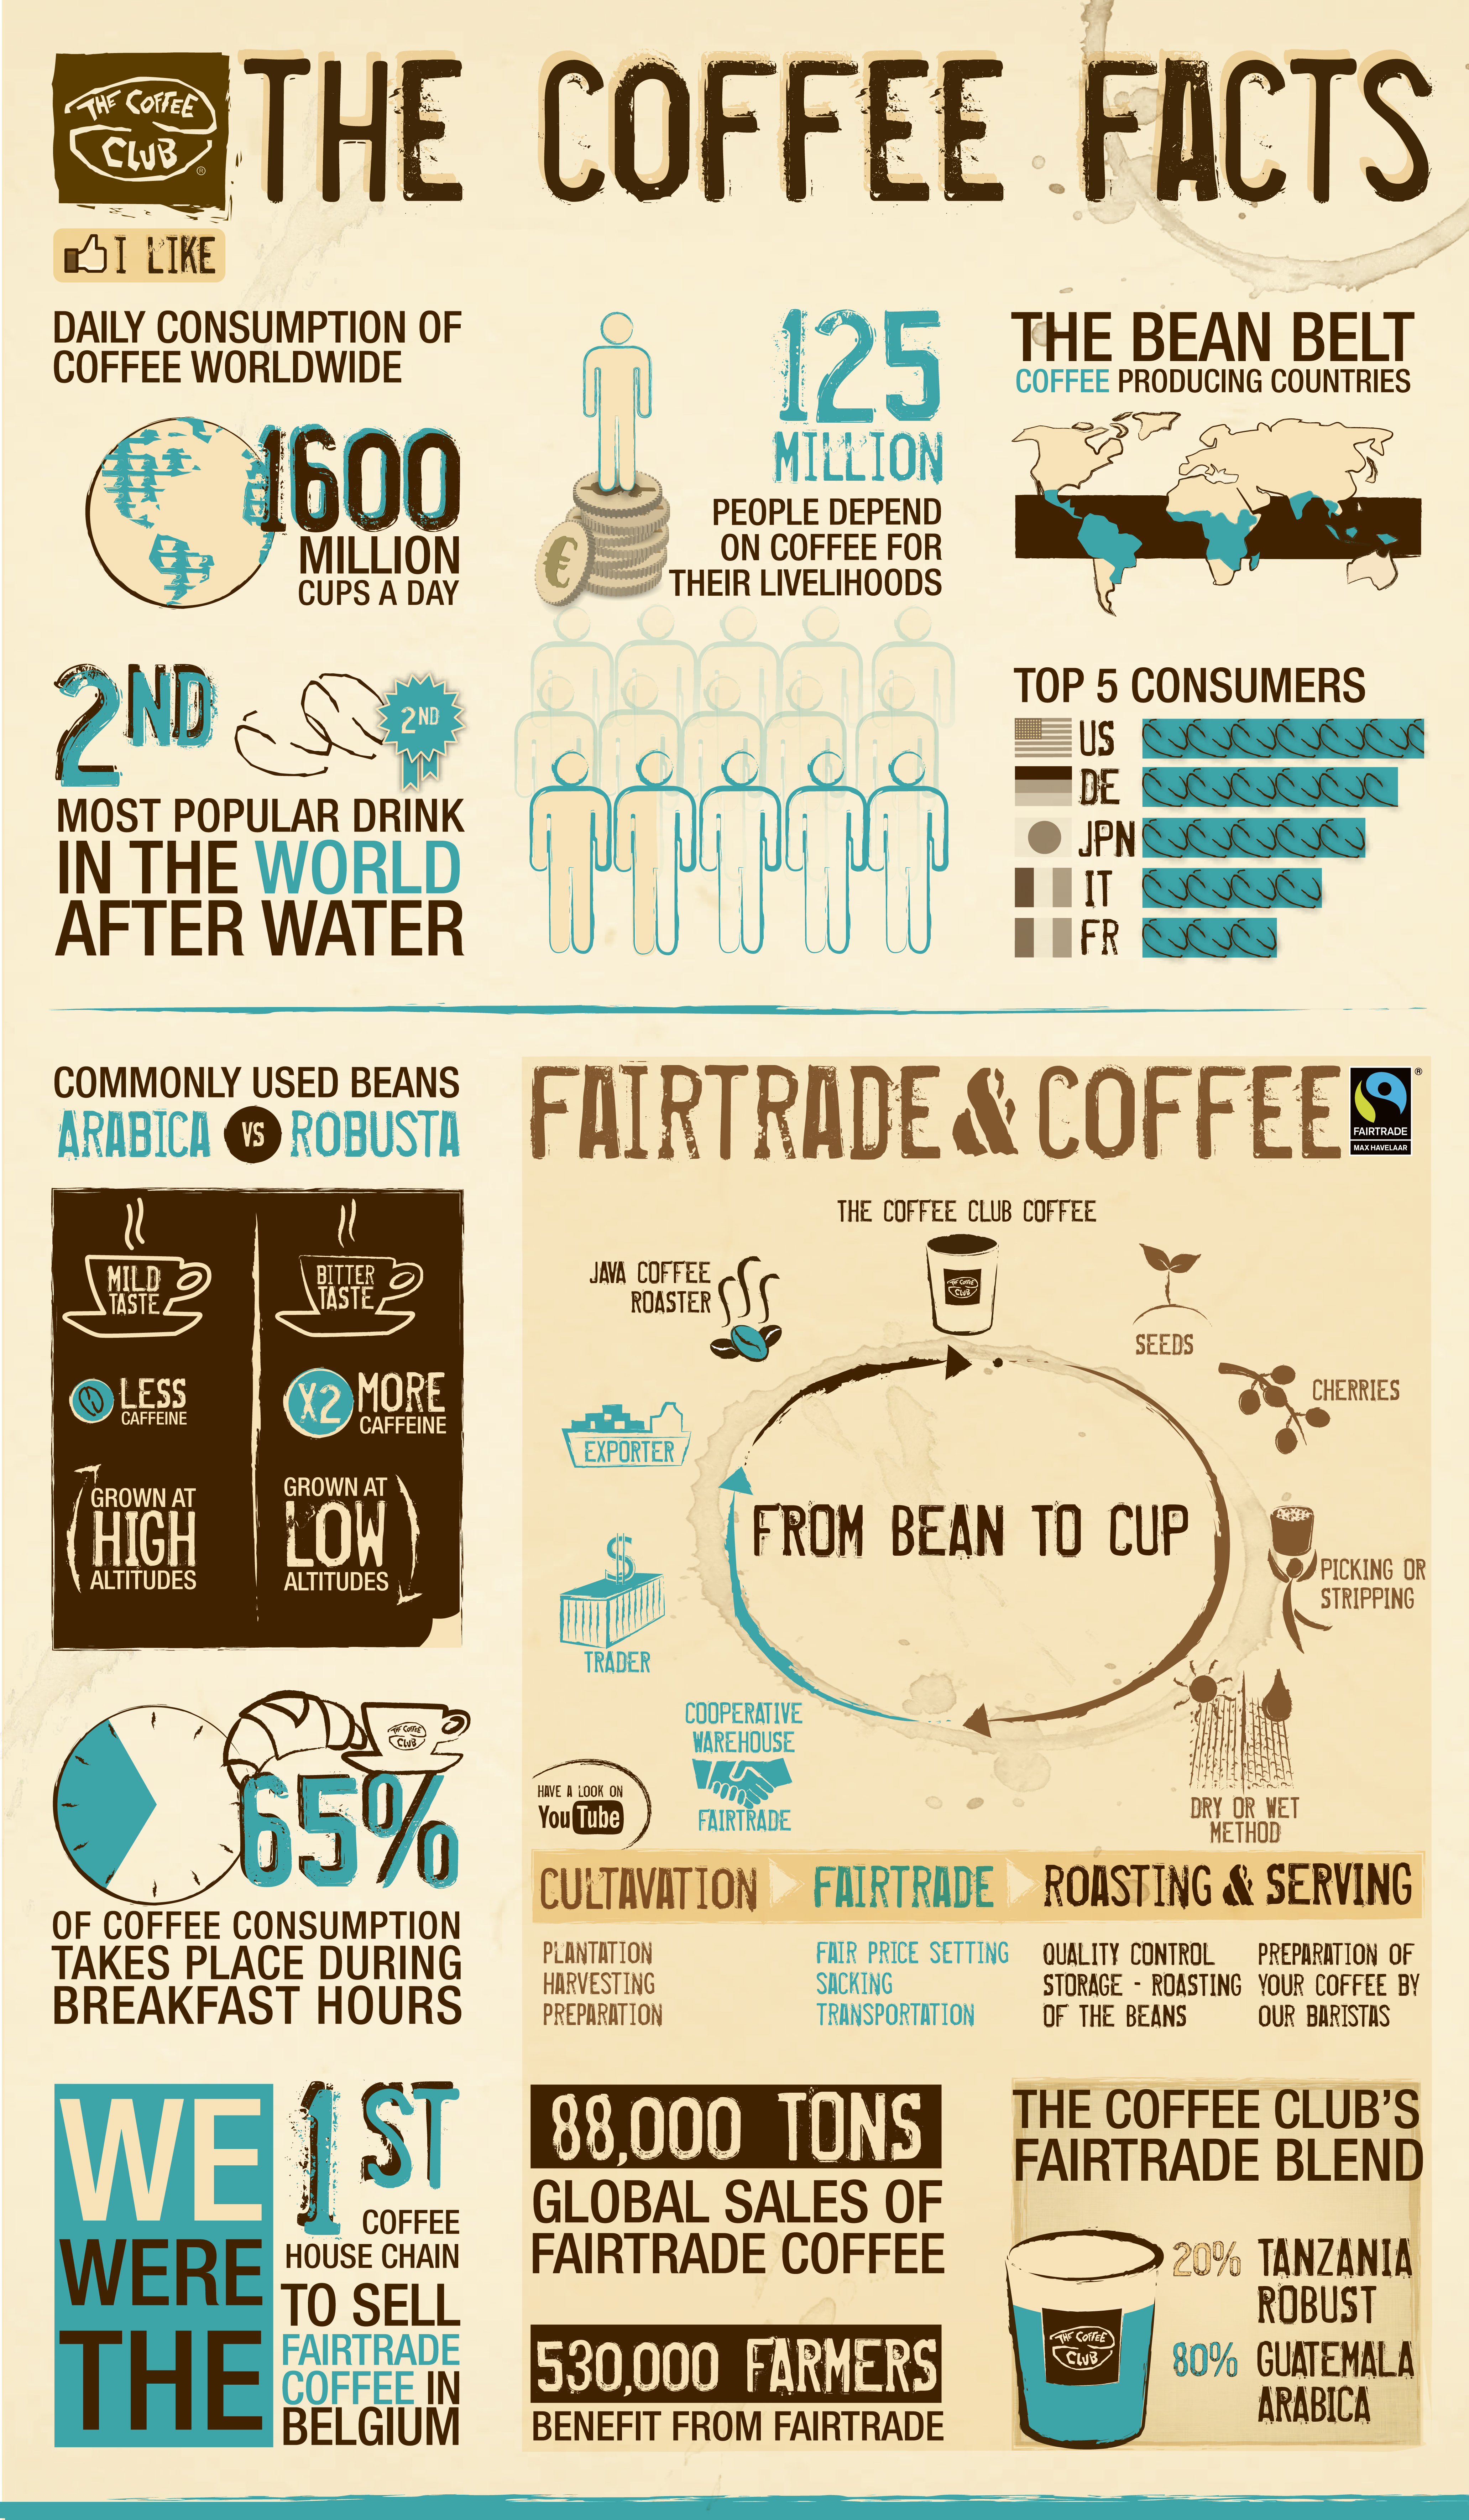 the-coffee-facts-by-the-coffee-club-belg